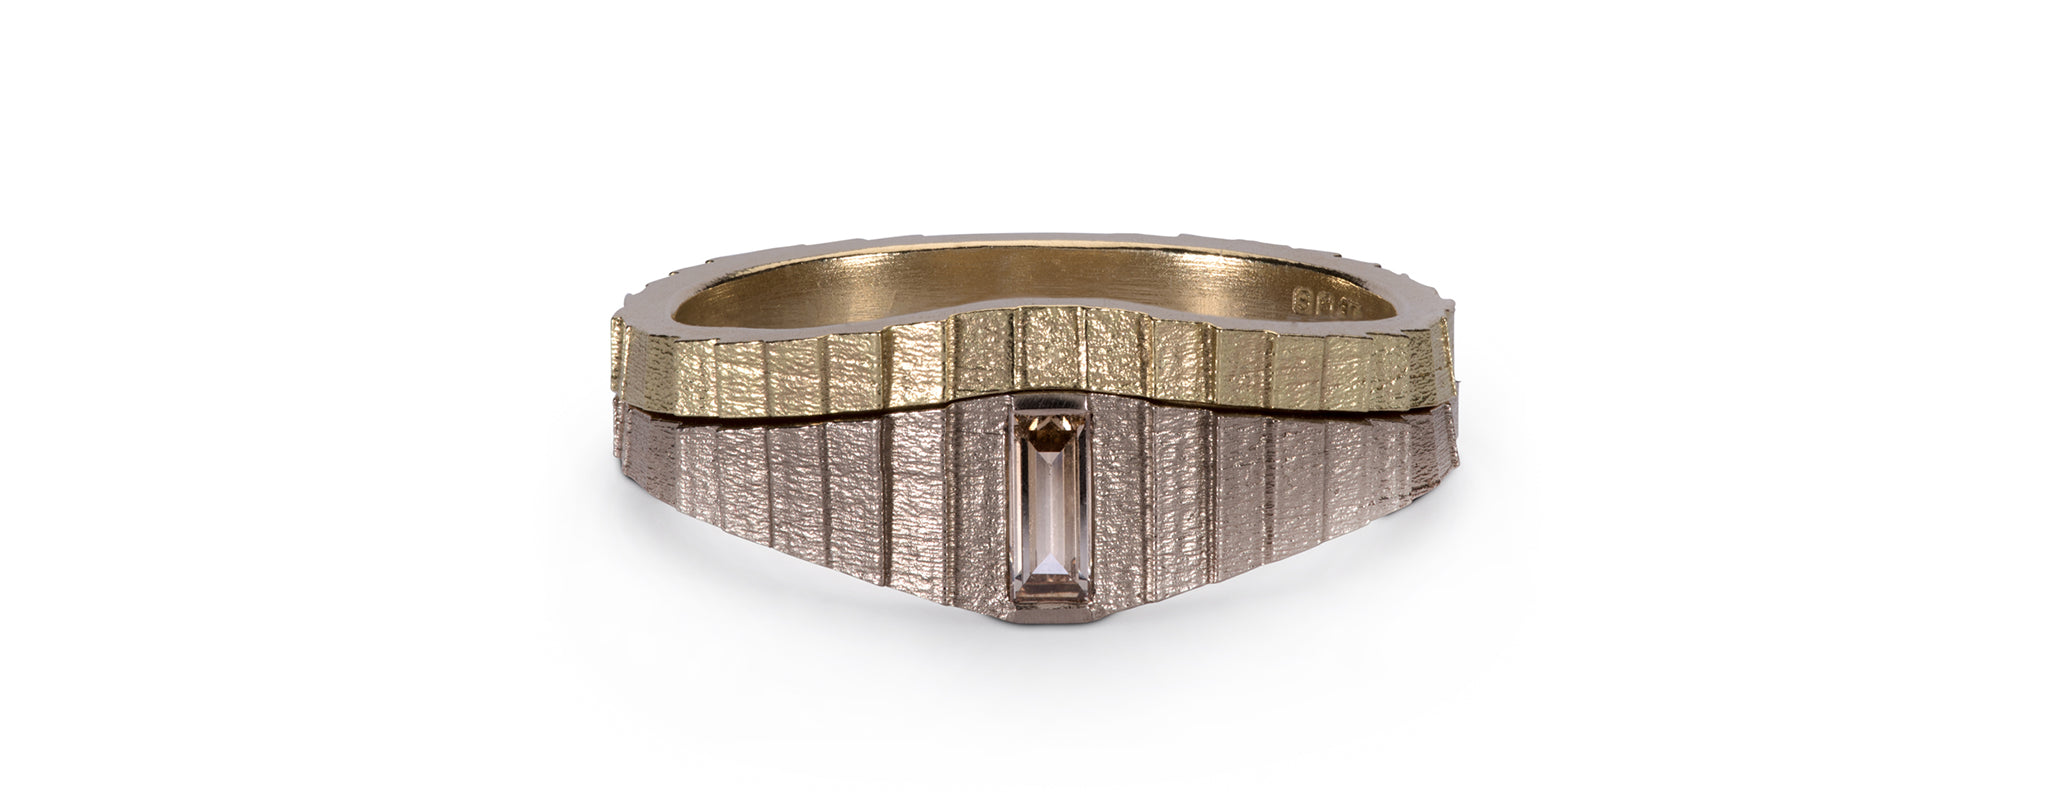 Tapered square band wedding ring set